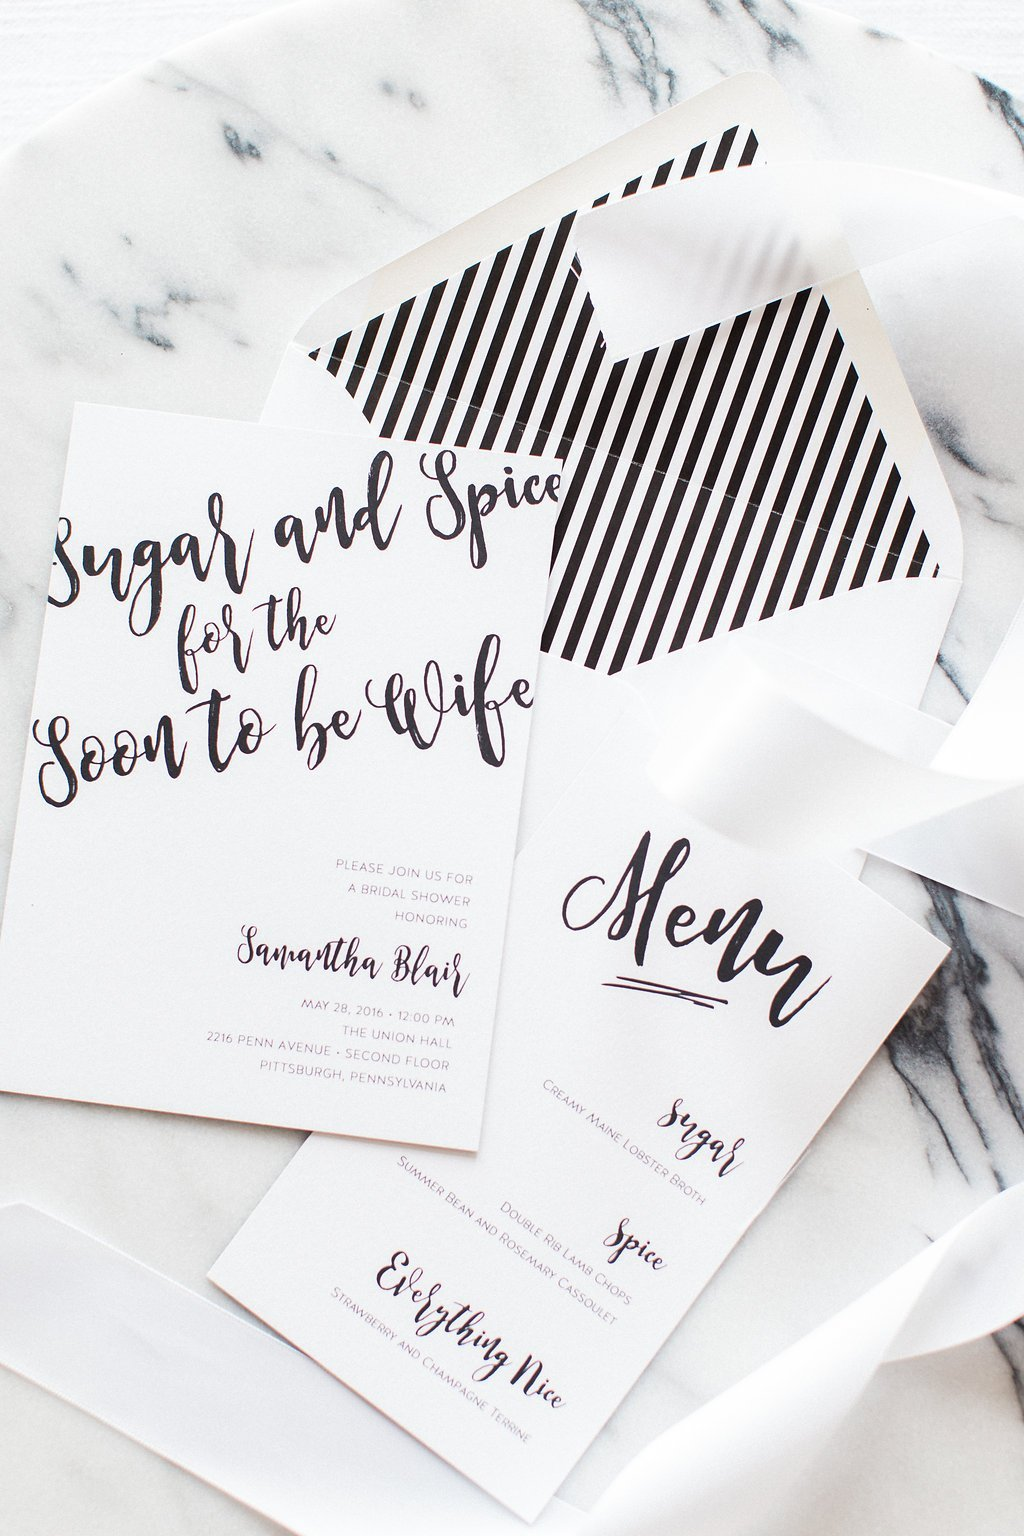 black and white invitation styled on marble board